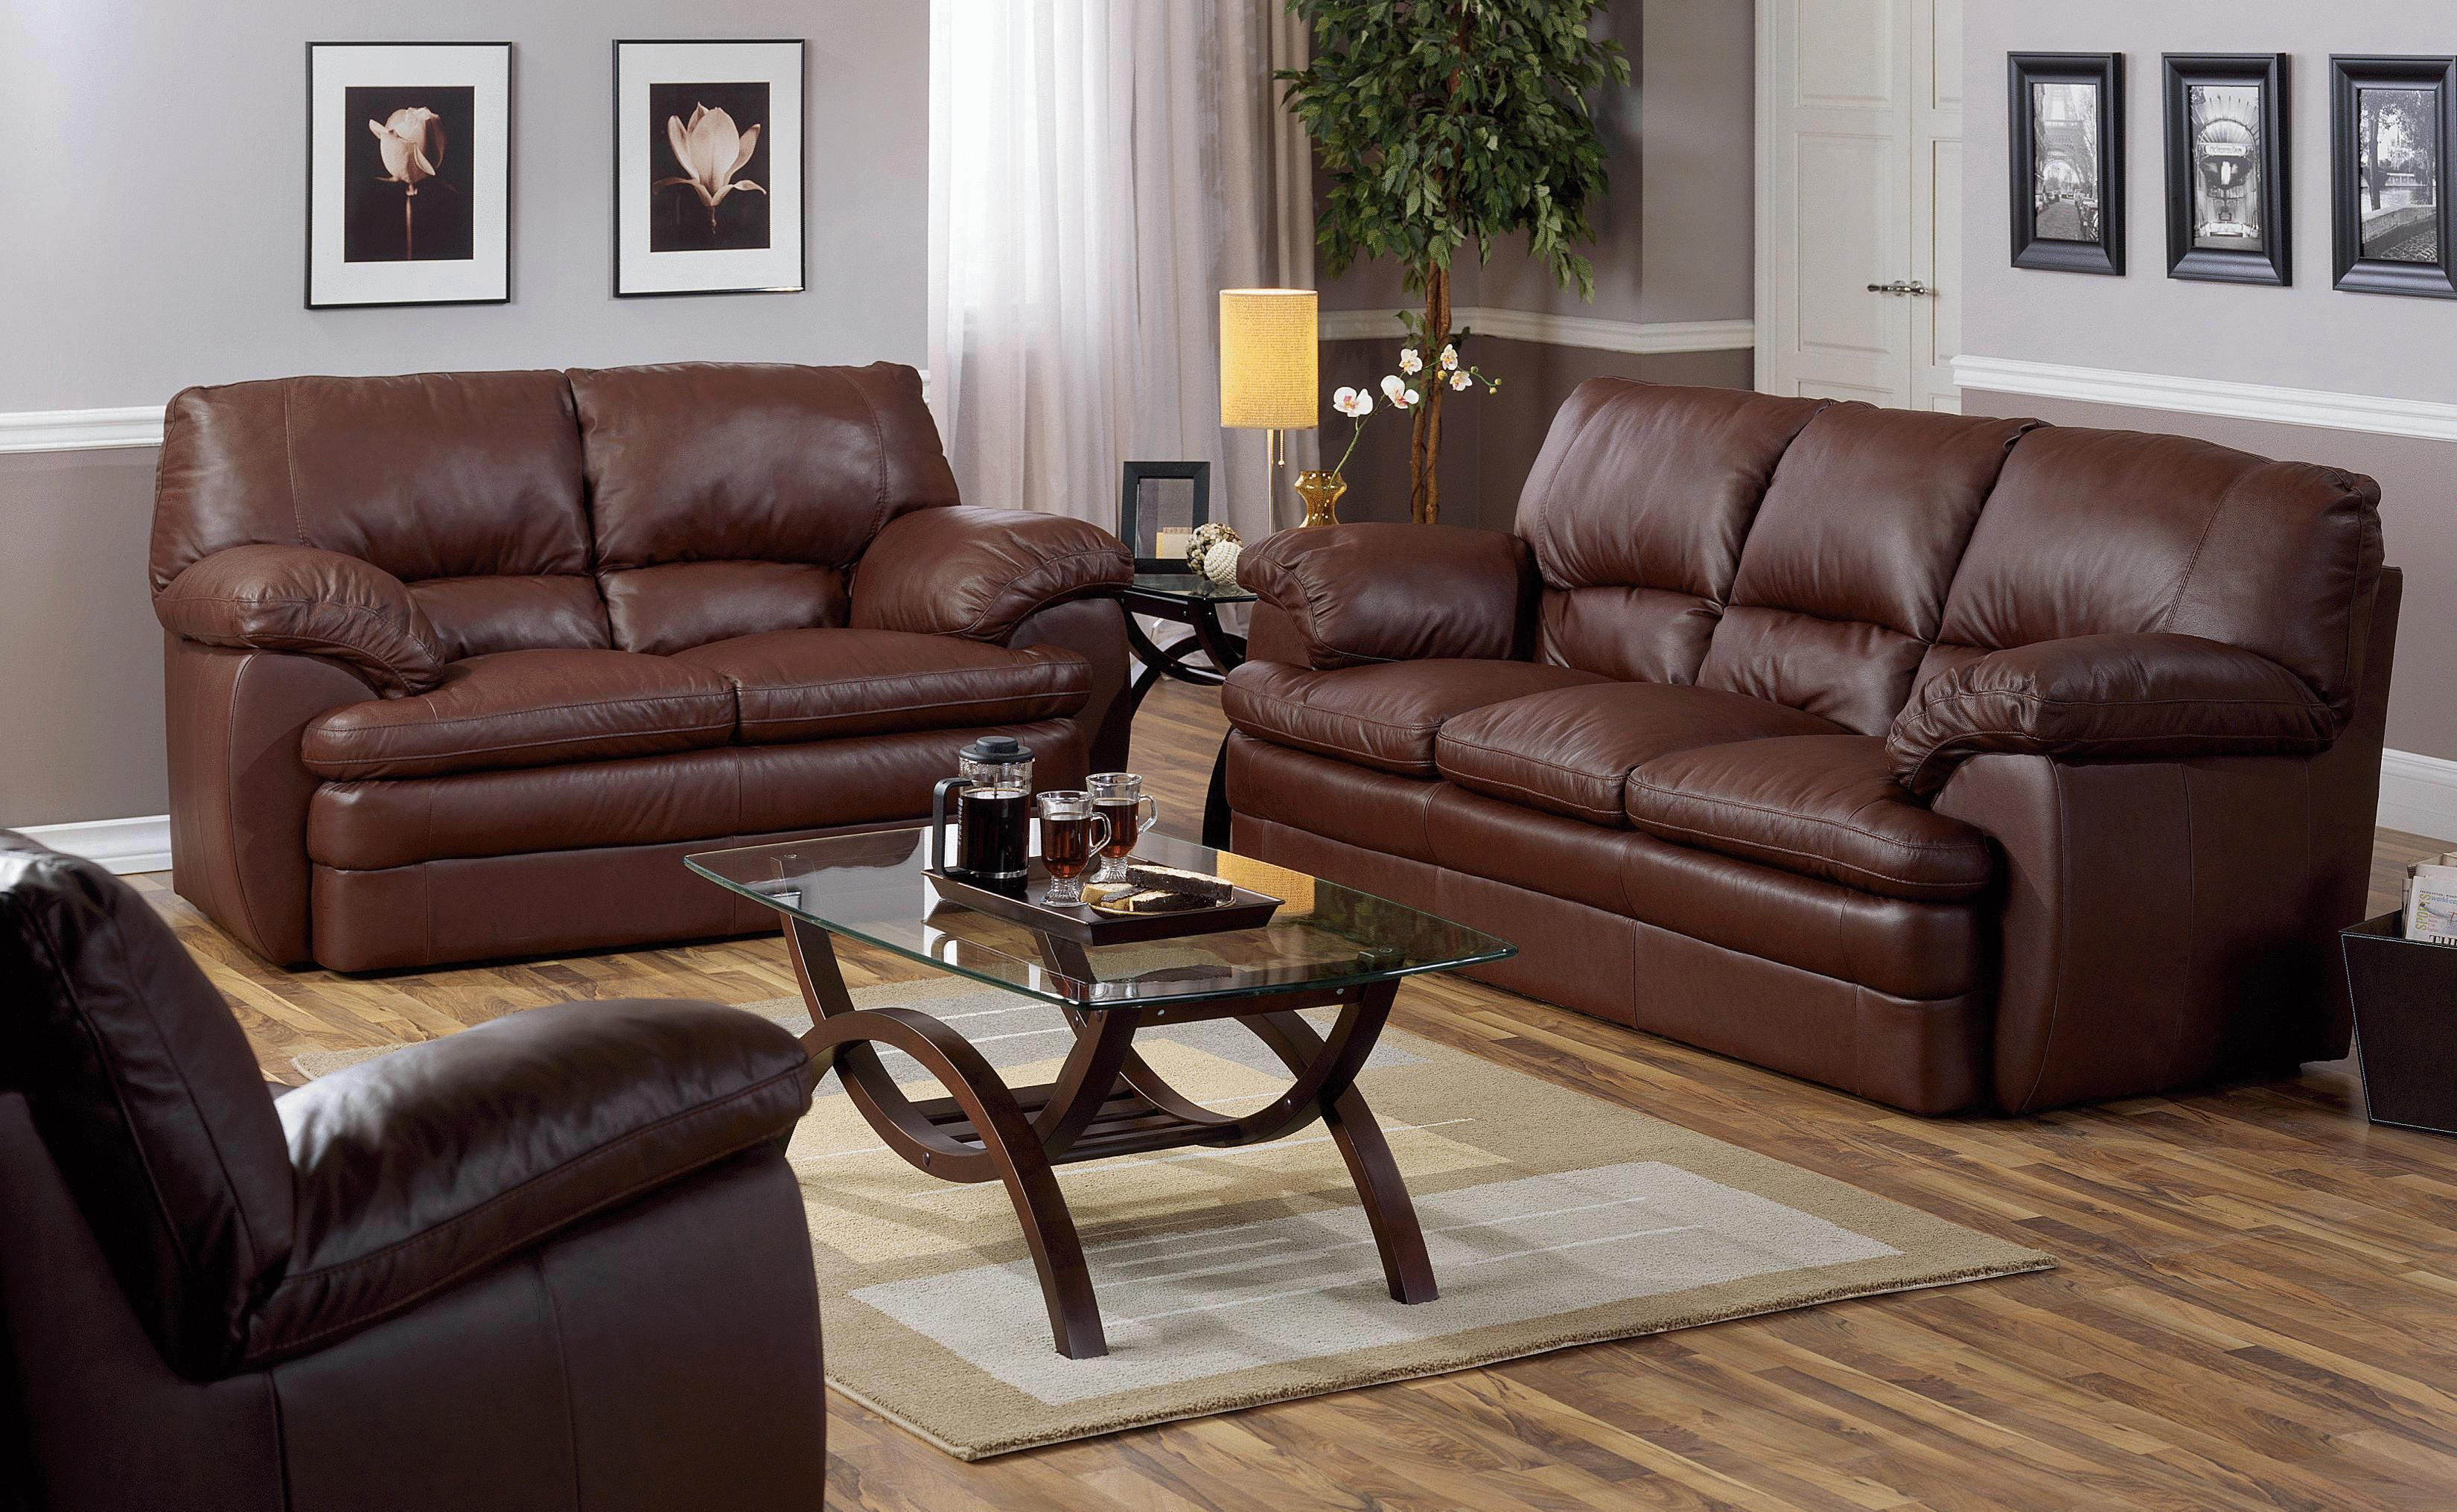 Marcella Pillow Top Sofa By Palliser Leather Set